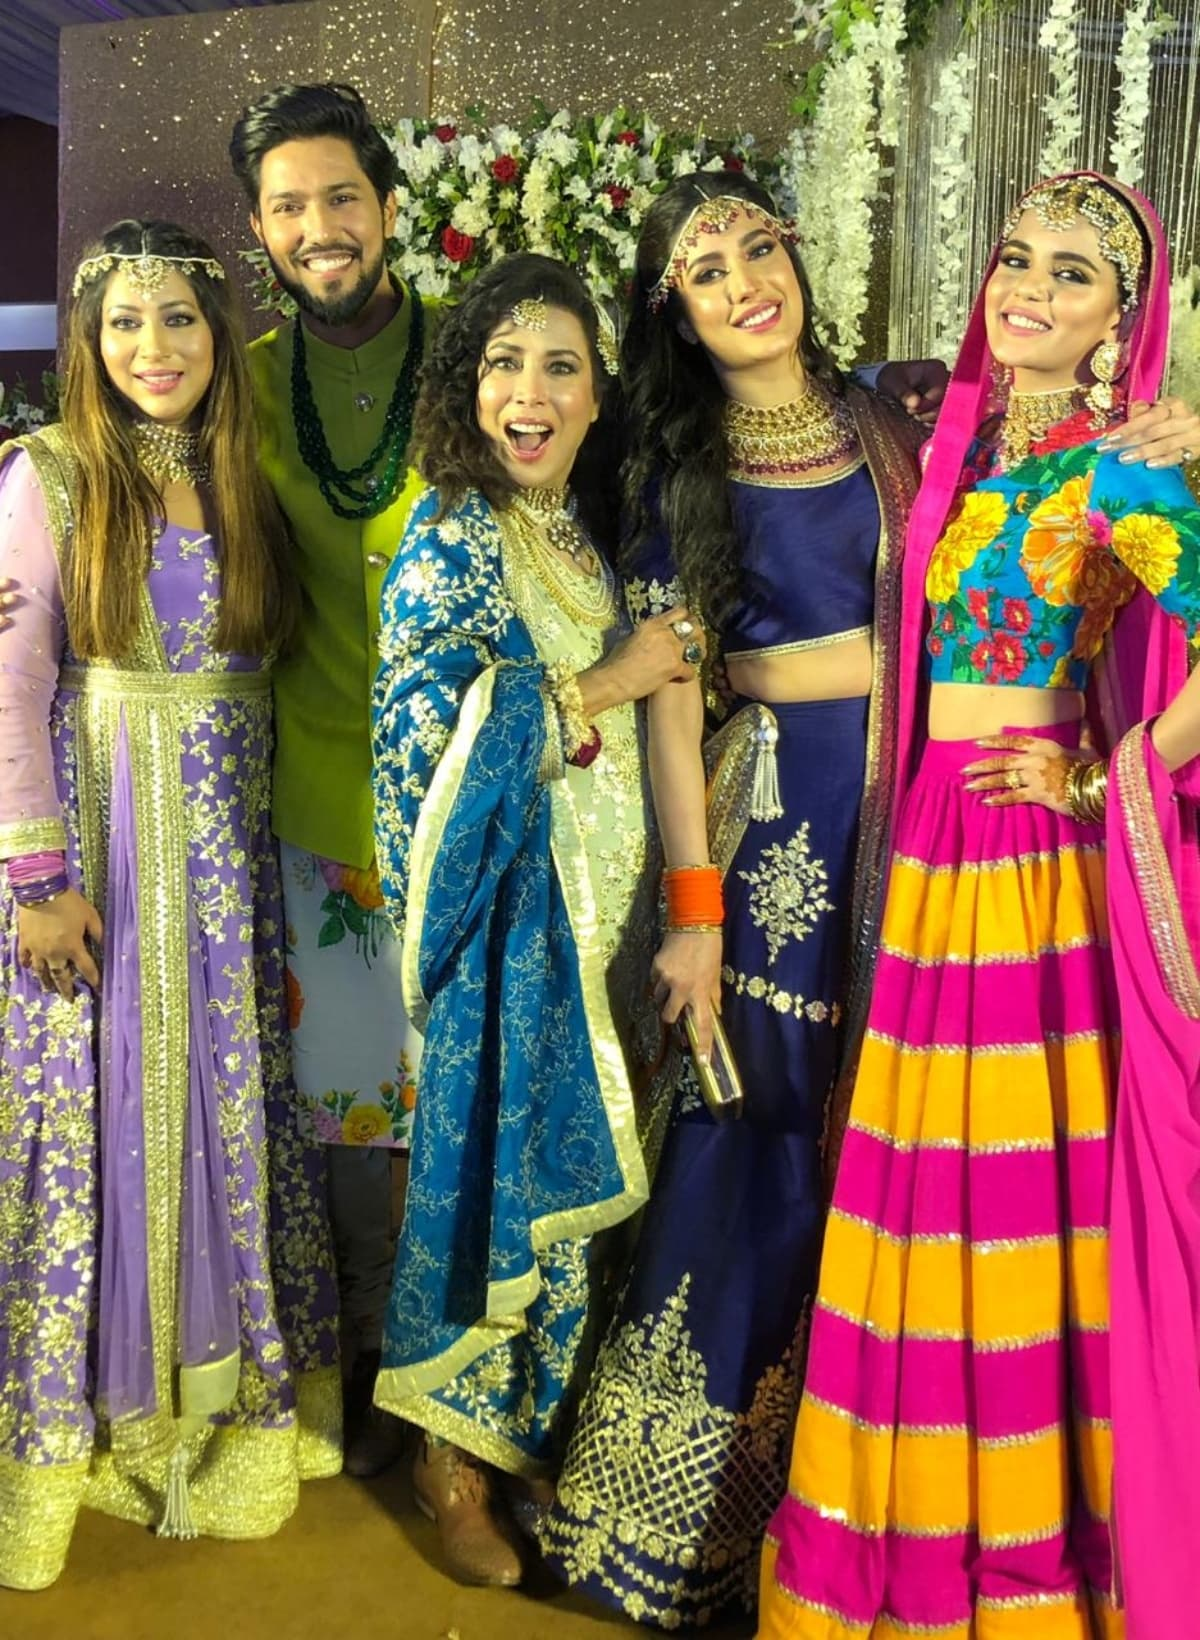 The Hayat family poses for a picture